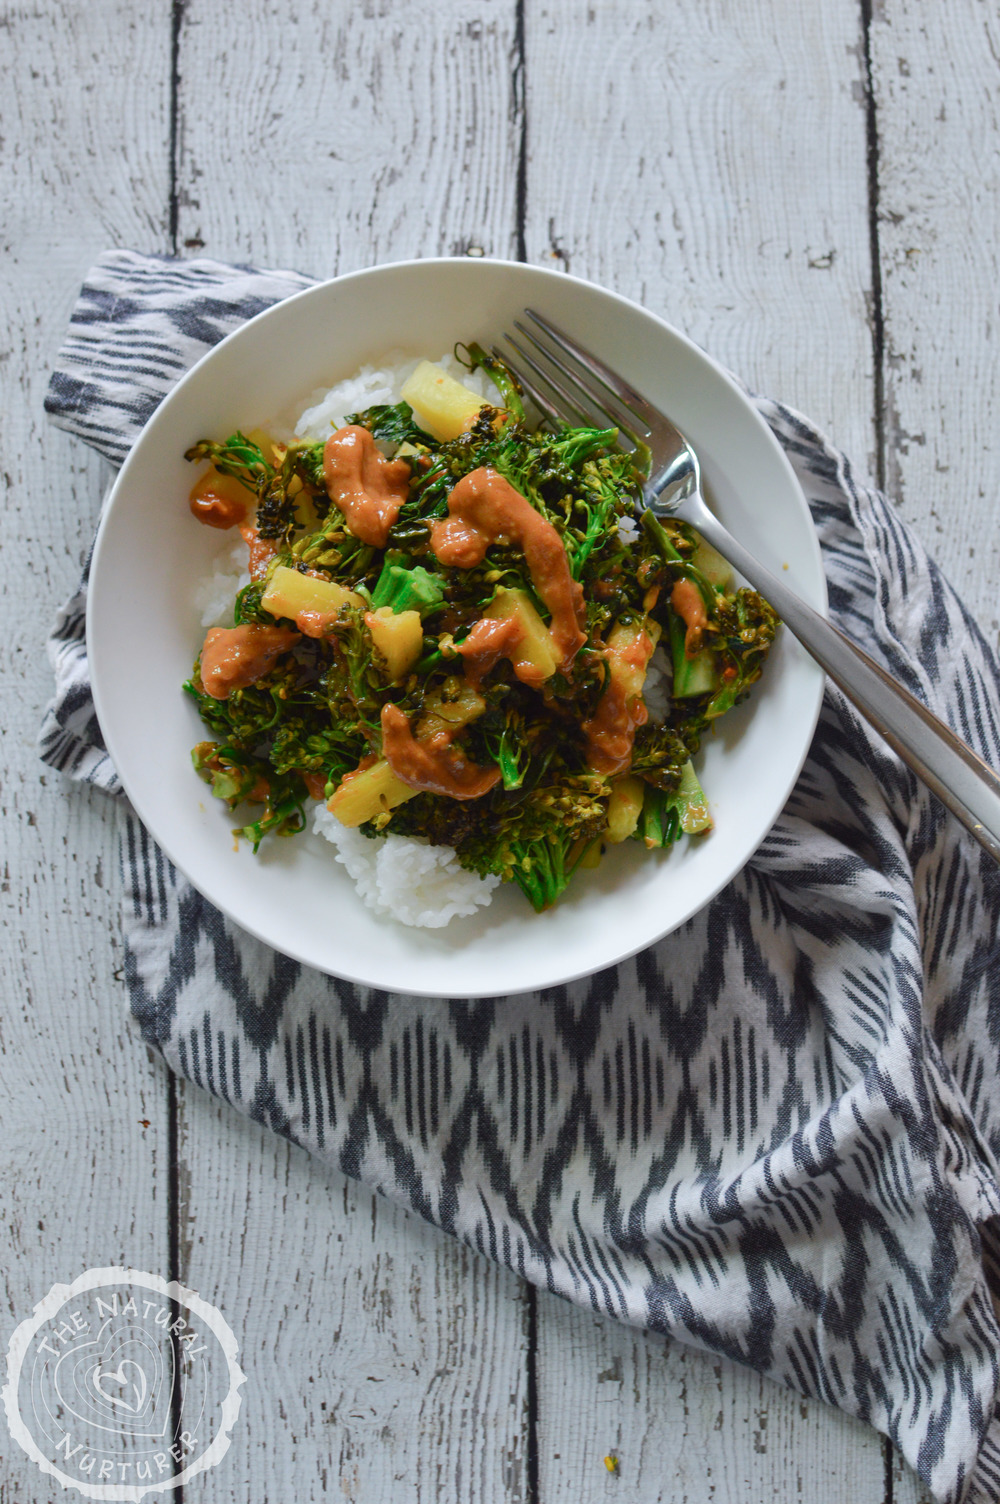 Pineapple Broccoli Stir Fry with Thai Peanut Sauce